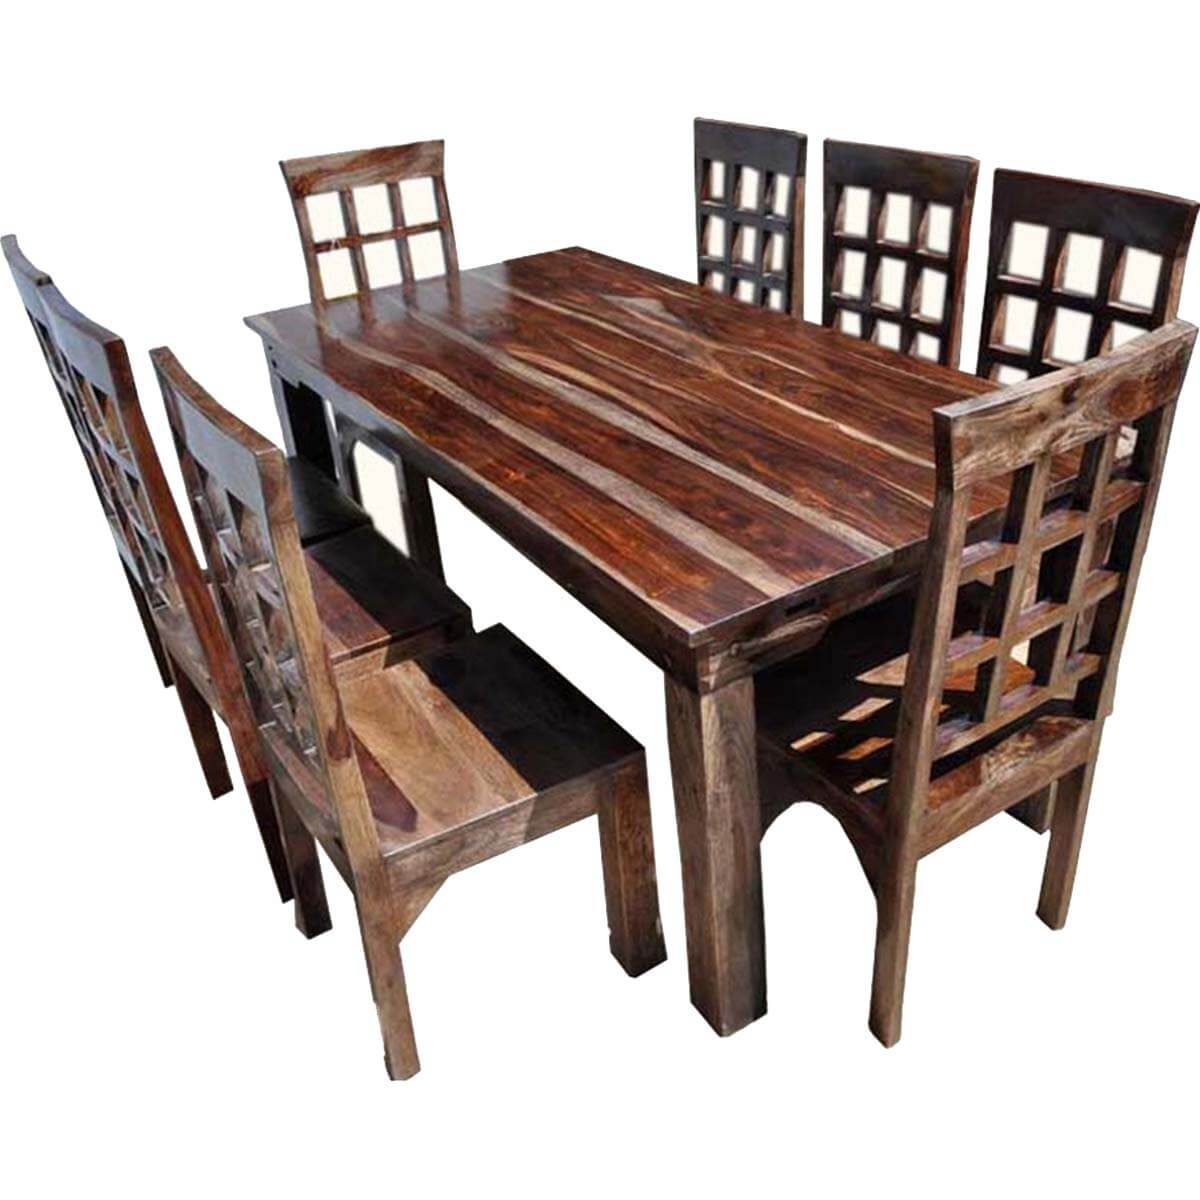 Wooden Dining Set ~ Farmhouse solid wood dining table chairs sideboard set